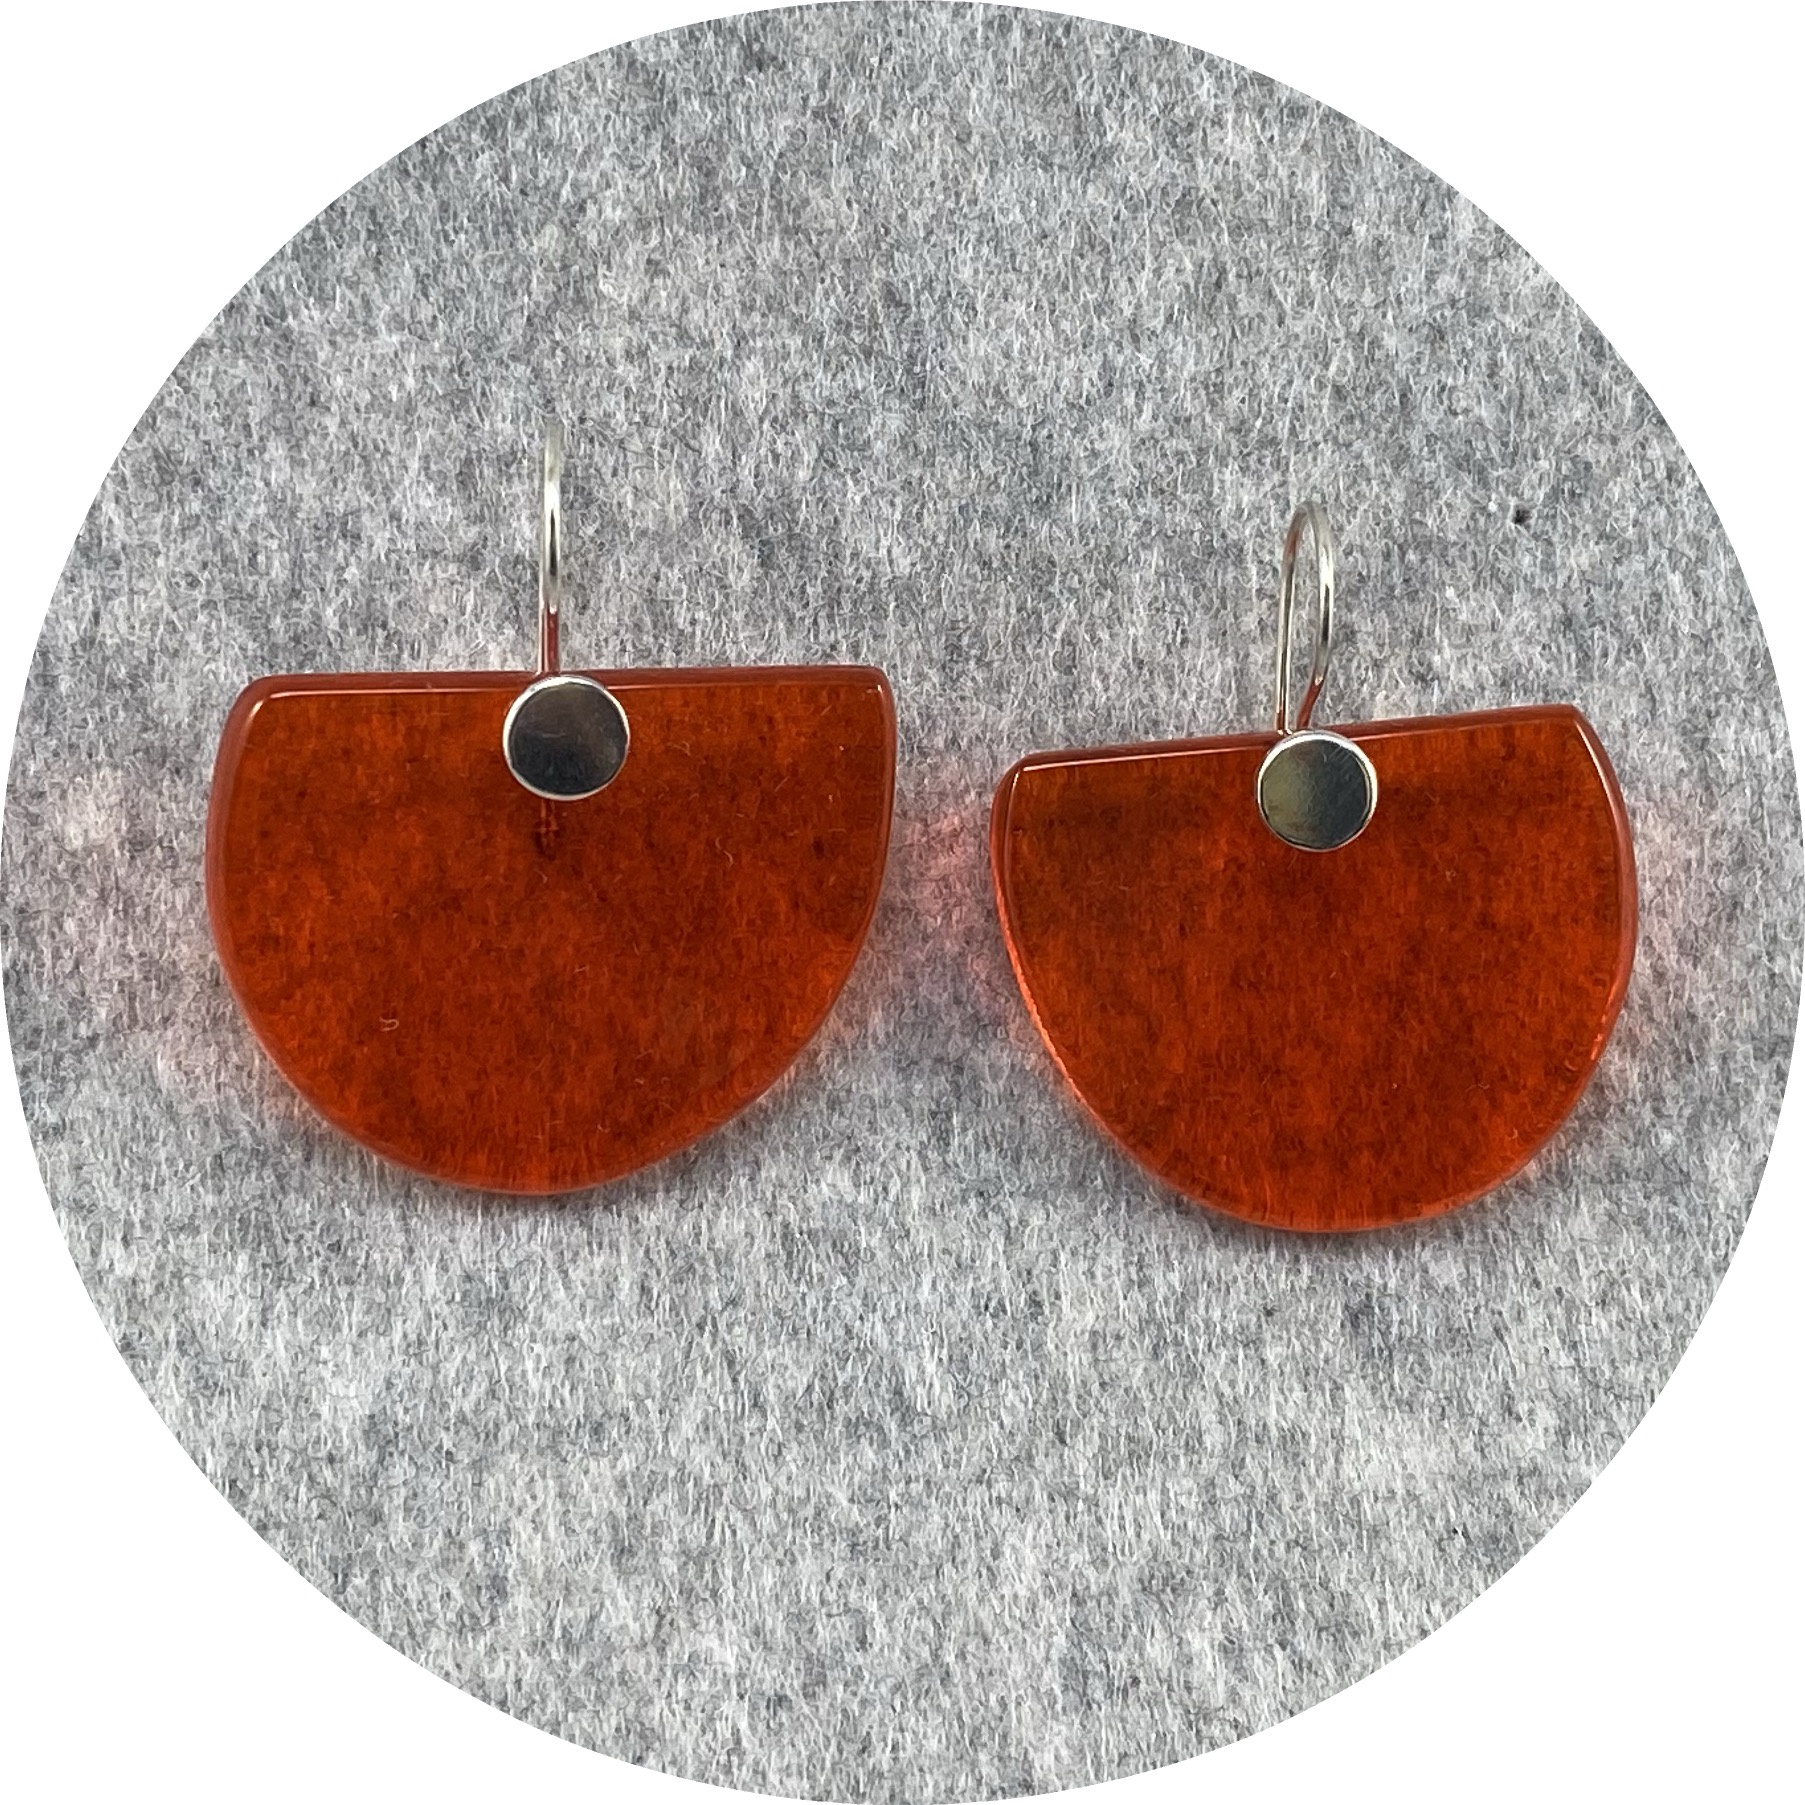 Alight Glass - Orange Half Circle Earrings, Glass, Sterling Silver